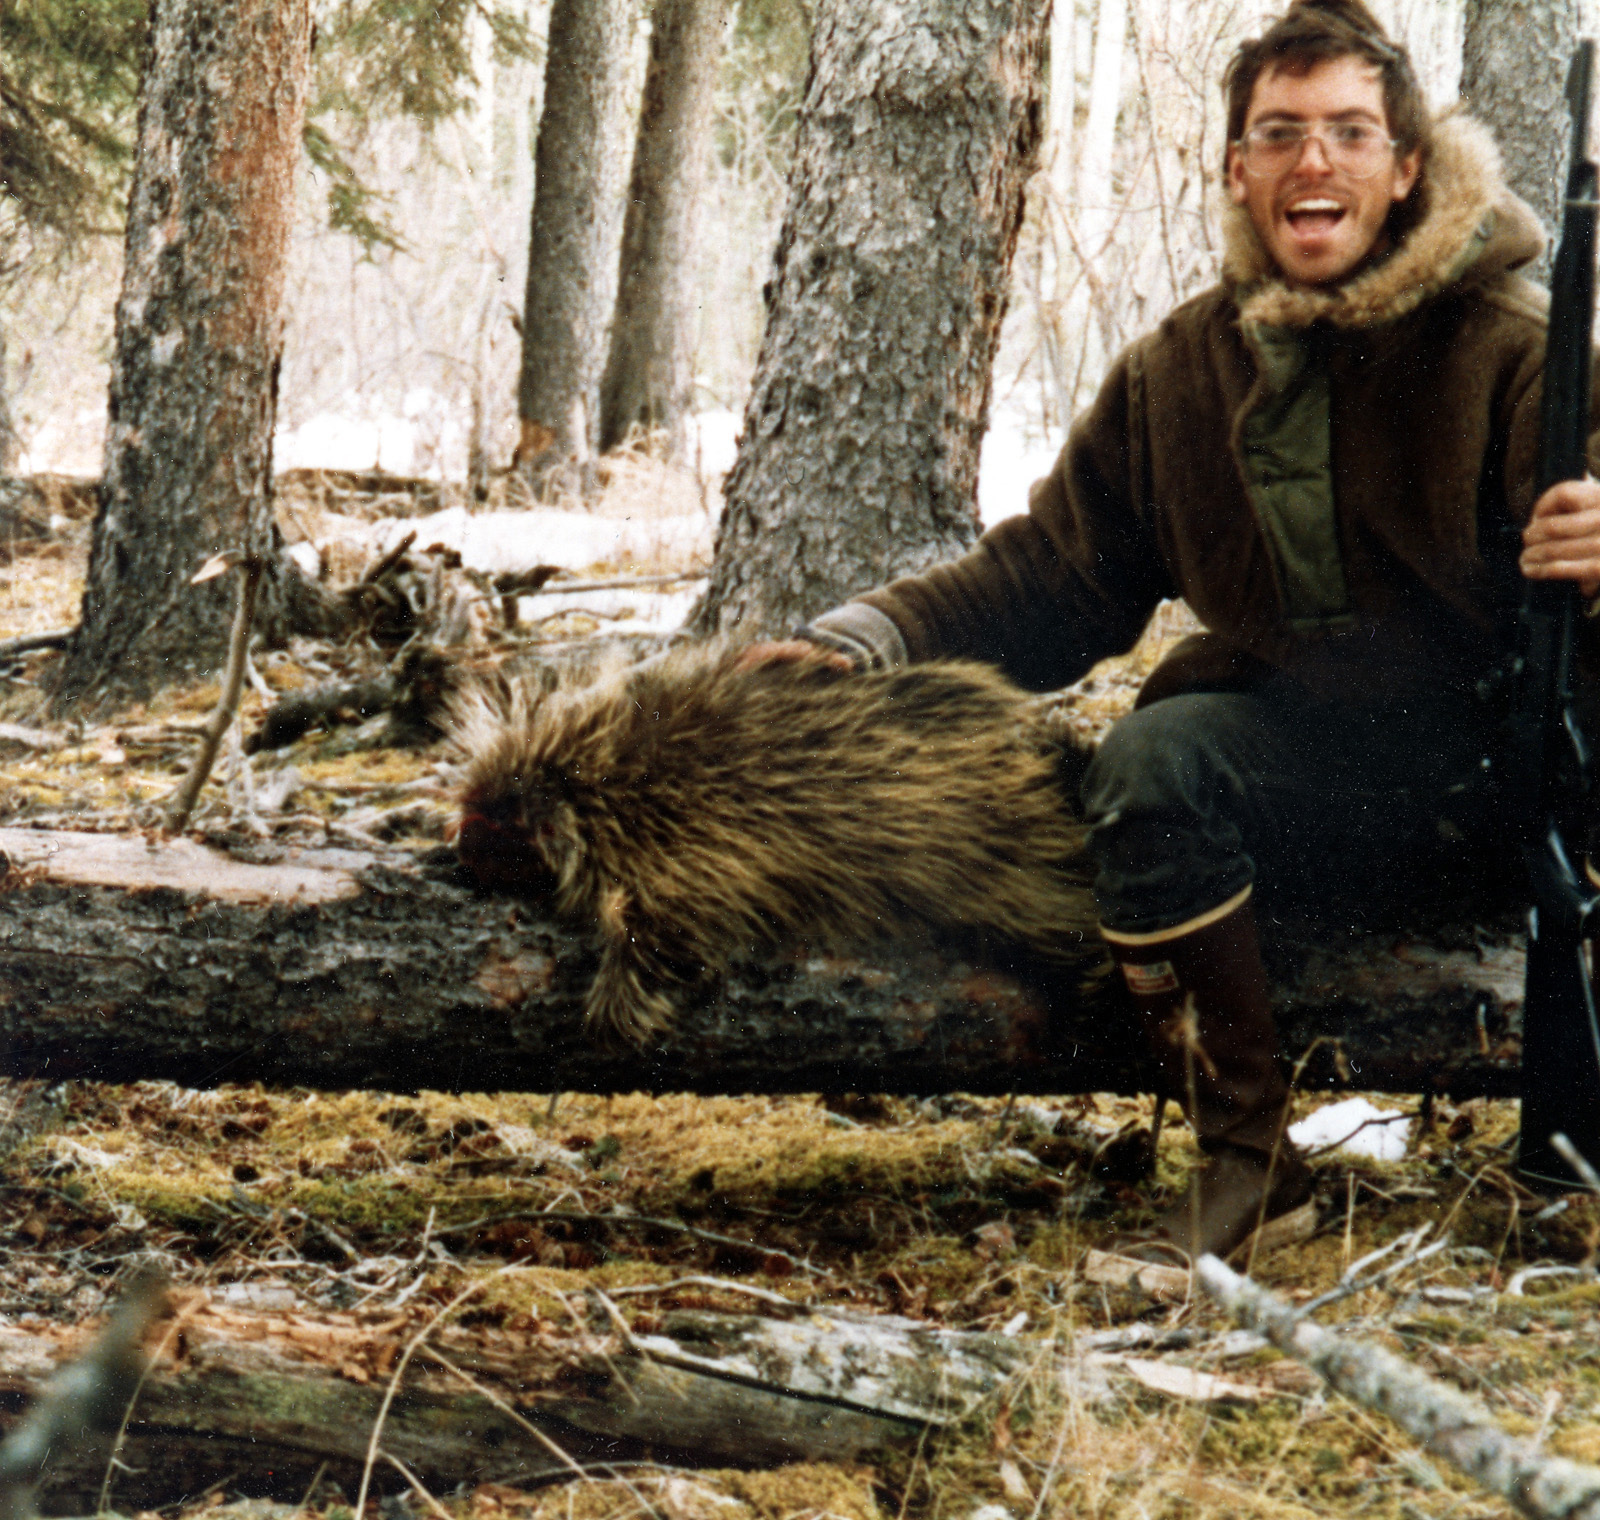 "**FILE** This undated photo provided by the Villard-McCandless family shows Chris McCandless, 24, posing for a self-portrait with a porcupine. McCandless, who hiked into the Alaska wilderness in April 1992 died in there in late August 1992, was apparently poisoned by wild seeds that left him unable to fully metabolize what little food he had. Sean Penn's movie ""Into the Wild"" and Jon Krakauer's book of the same name is causing people from all over the world to retrace McCandless's steps to 1940s-era International Harvester bus near Healy, Alaska where his body was found. (AP Photo/Villard-McCandless family) **NO SALES**"